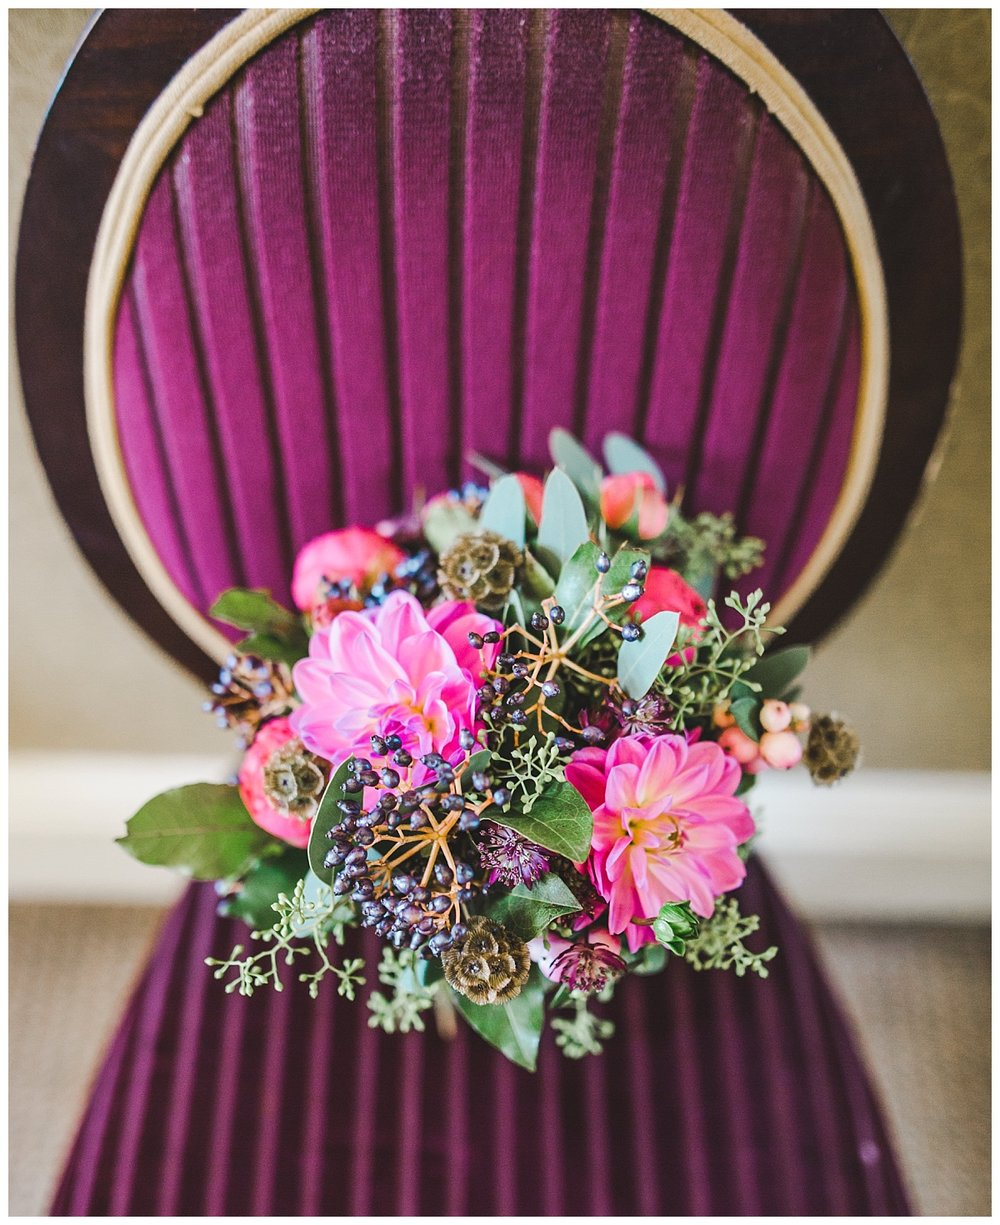 The bridal bouquet at Manchester town hall for the wedding ceremony- Creative wedding photography